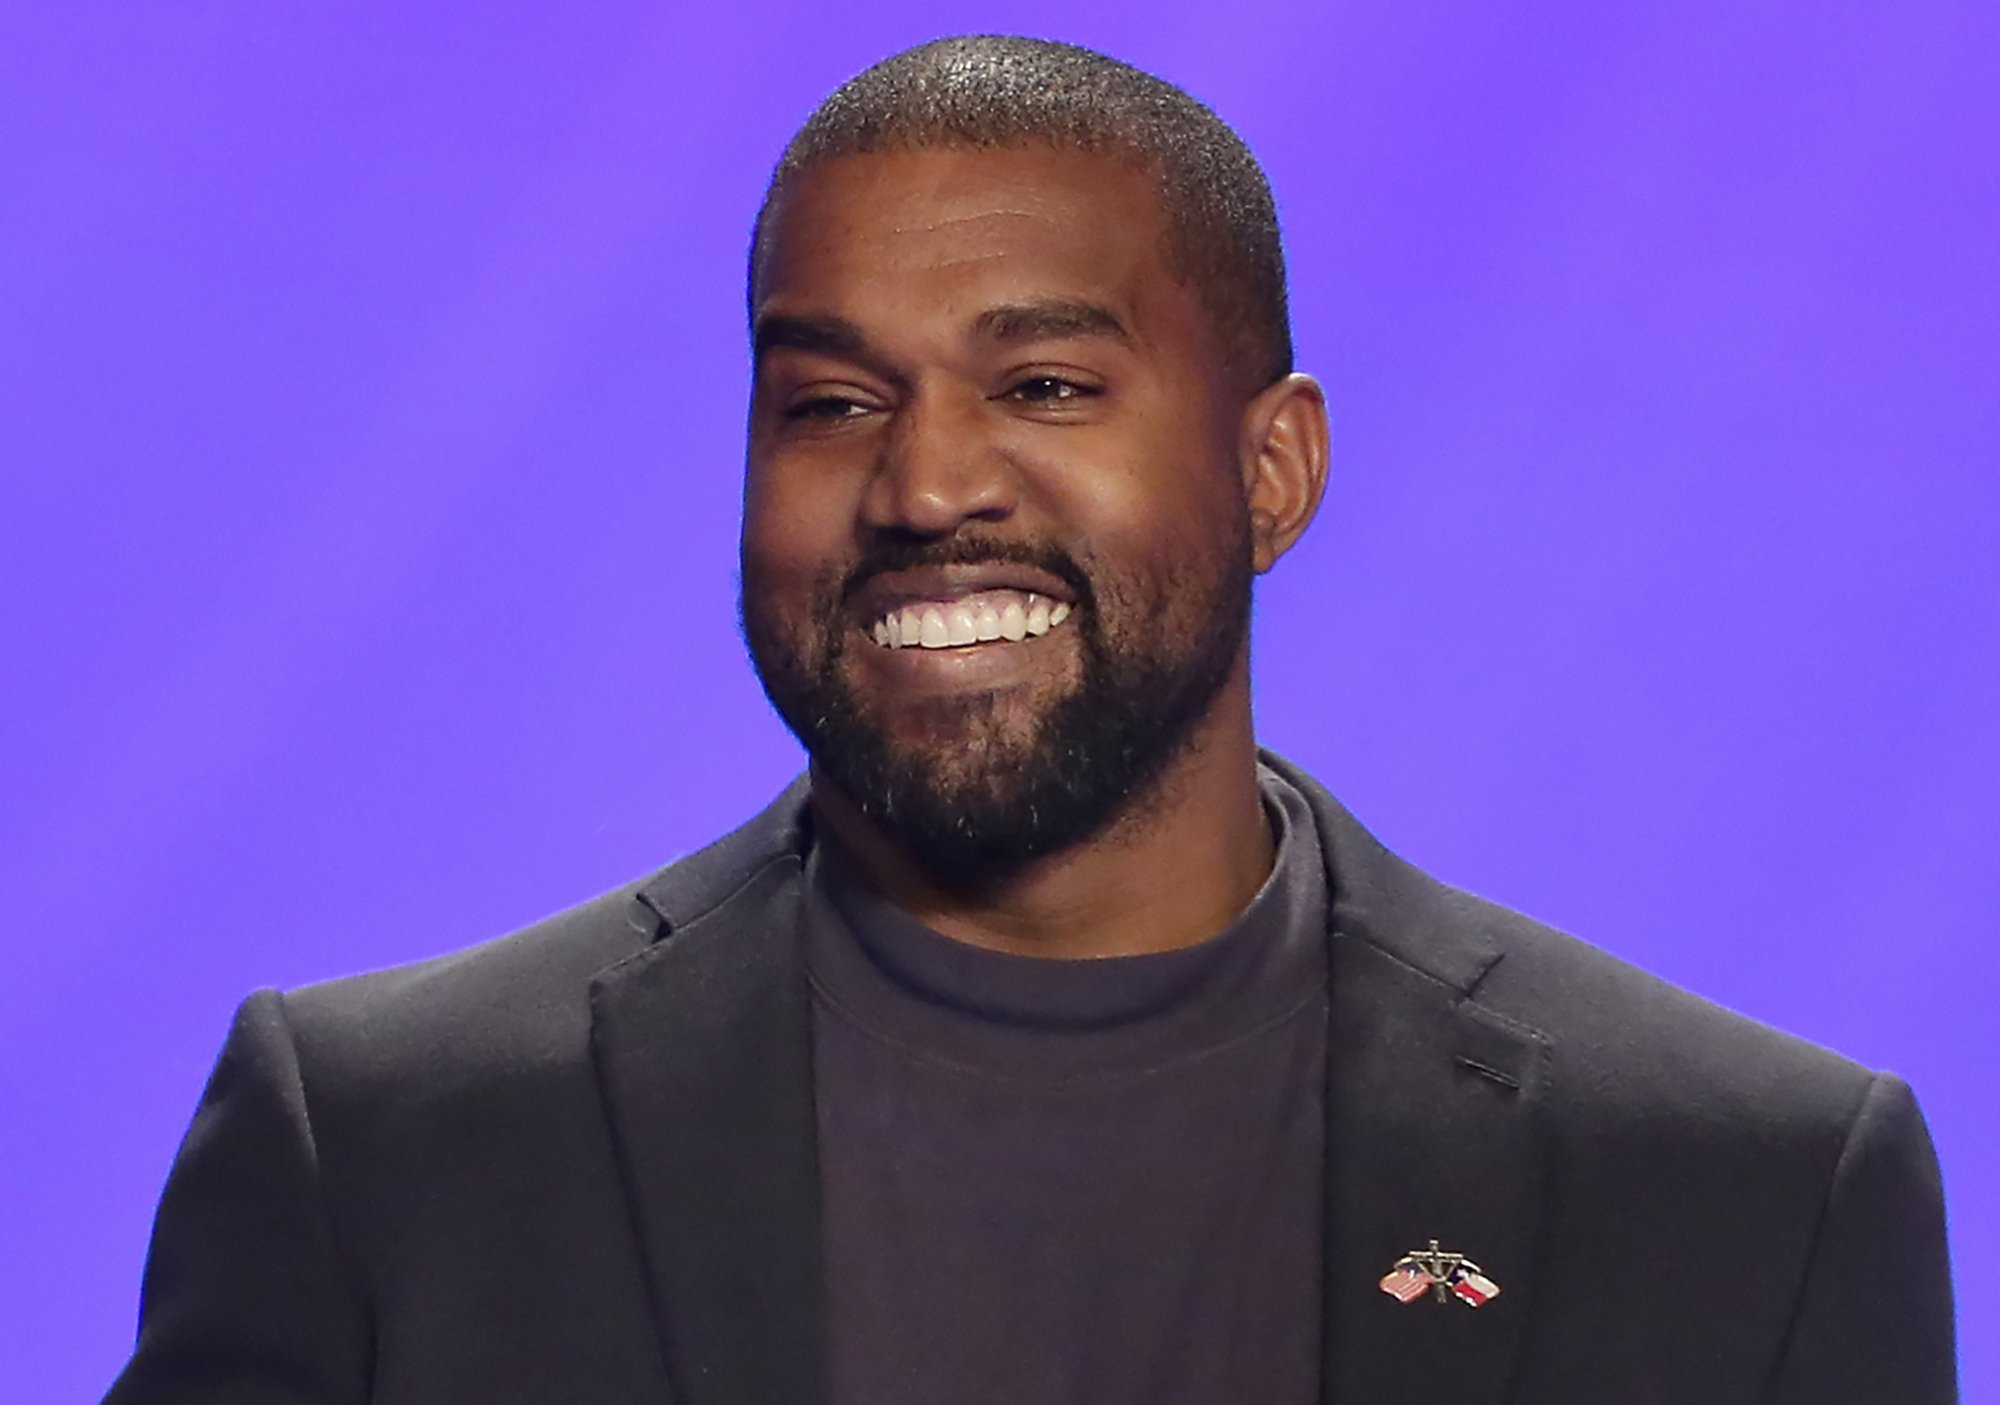 Kanye West Shares His First Campaign Ad And It's All About Restoring America's Faith!